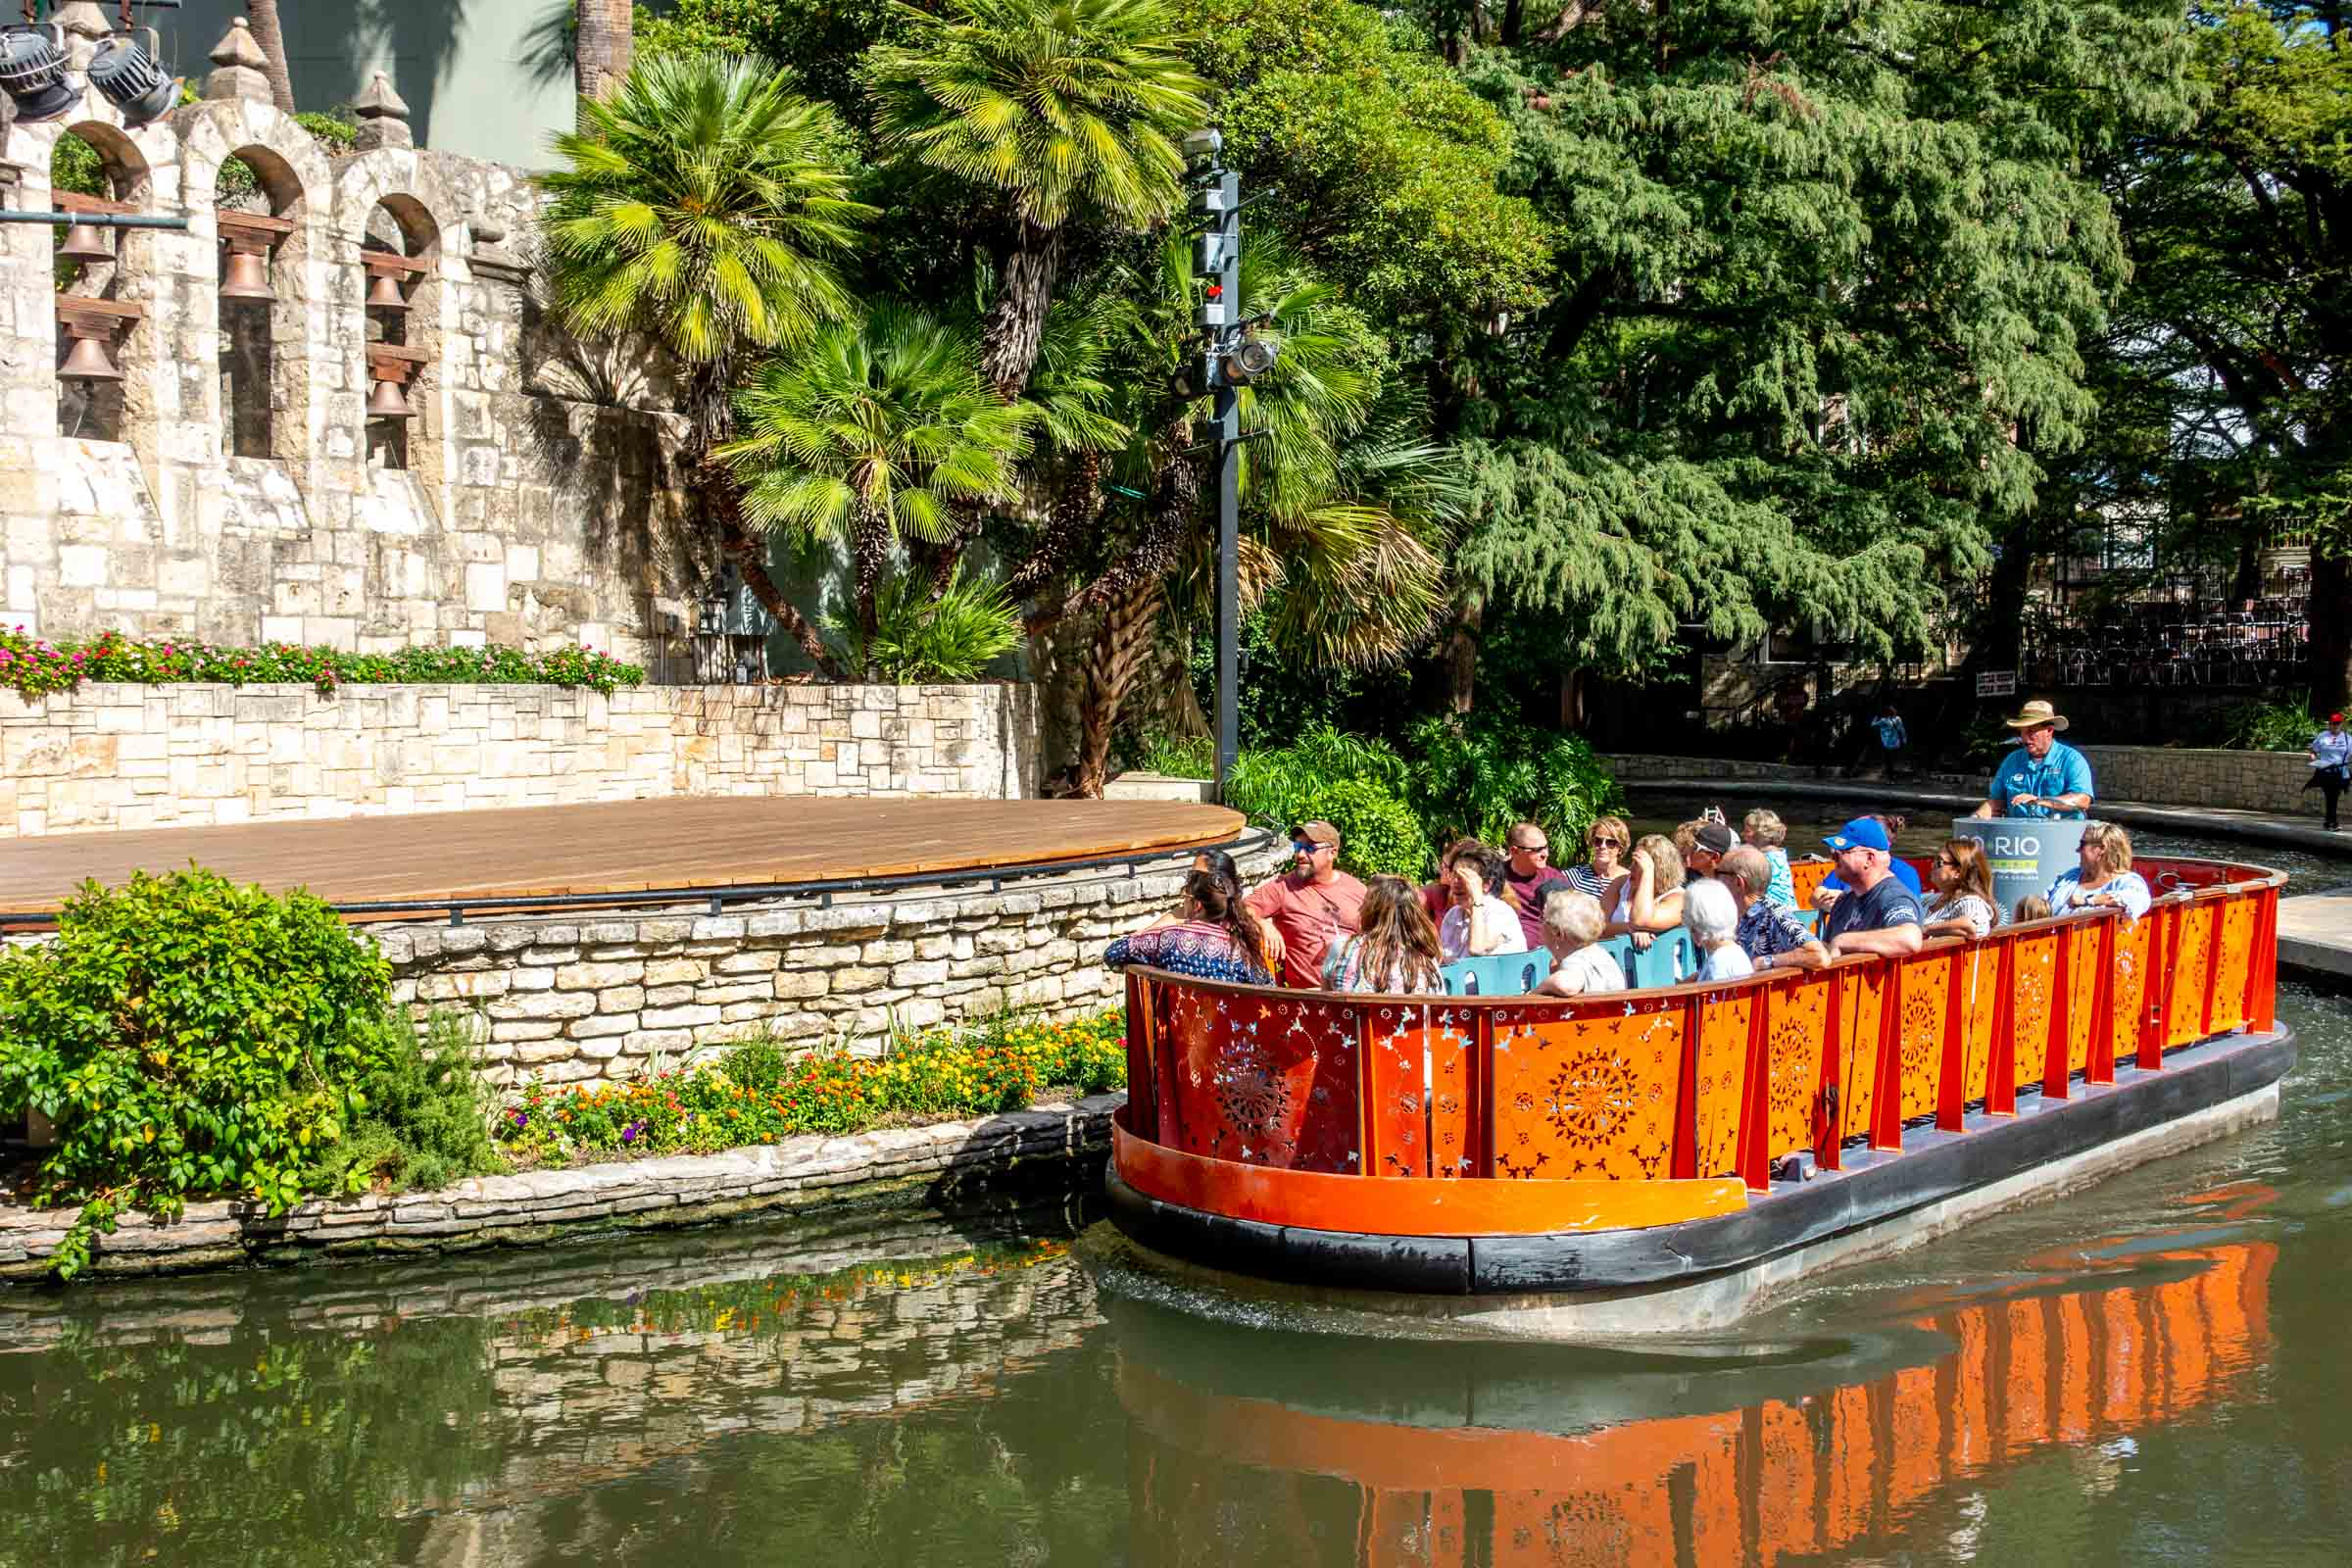 Orange boat filled with people in river